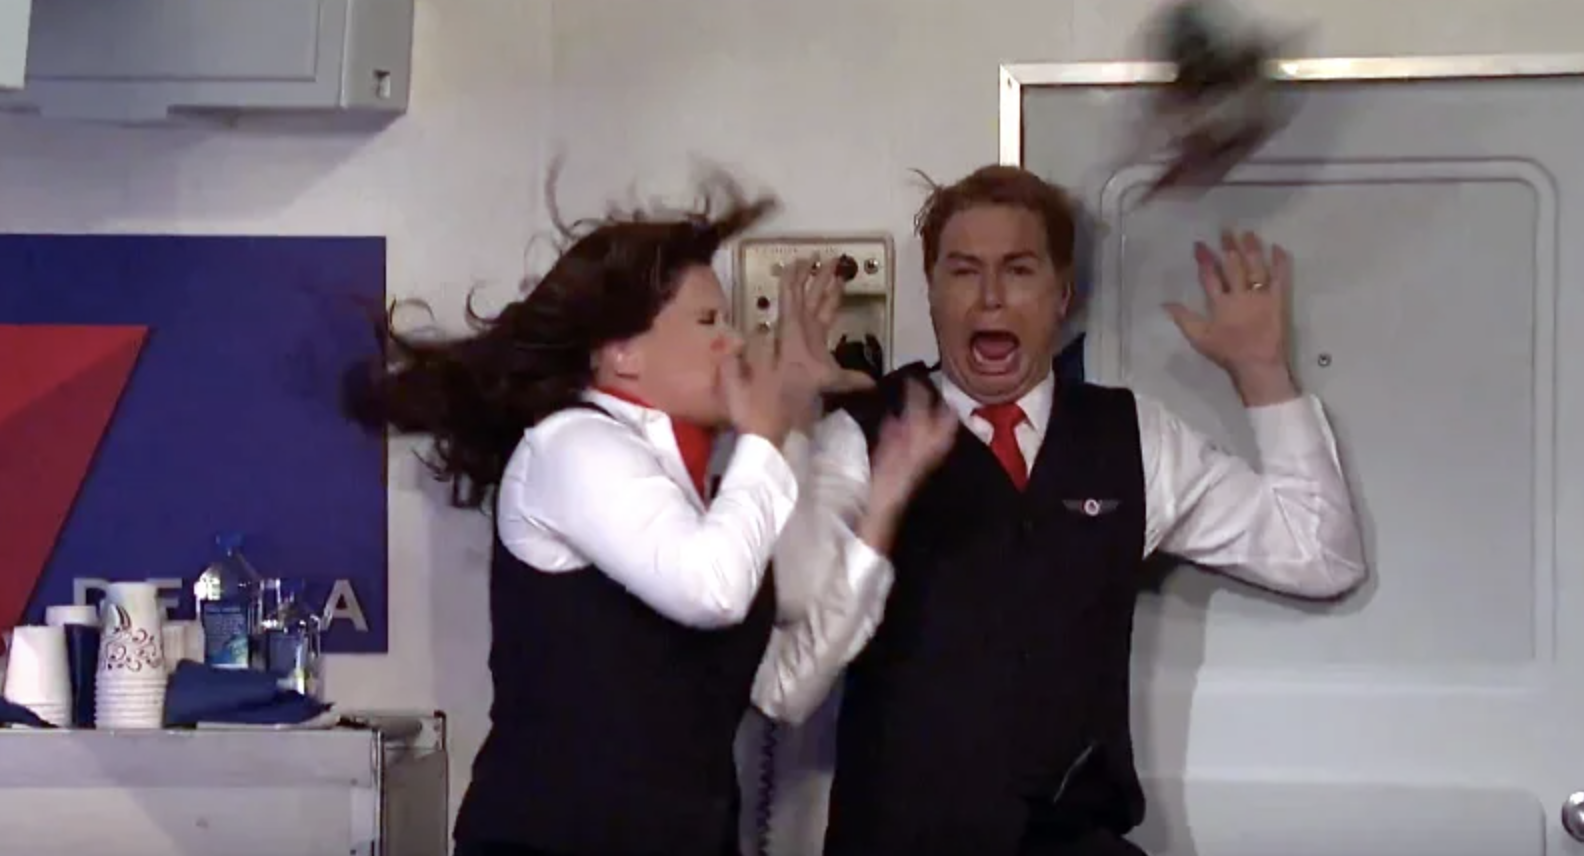 """An """"SNL"""" sketch where two flight attendants are scared"""